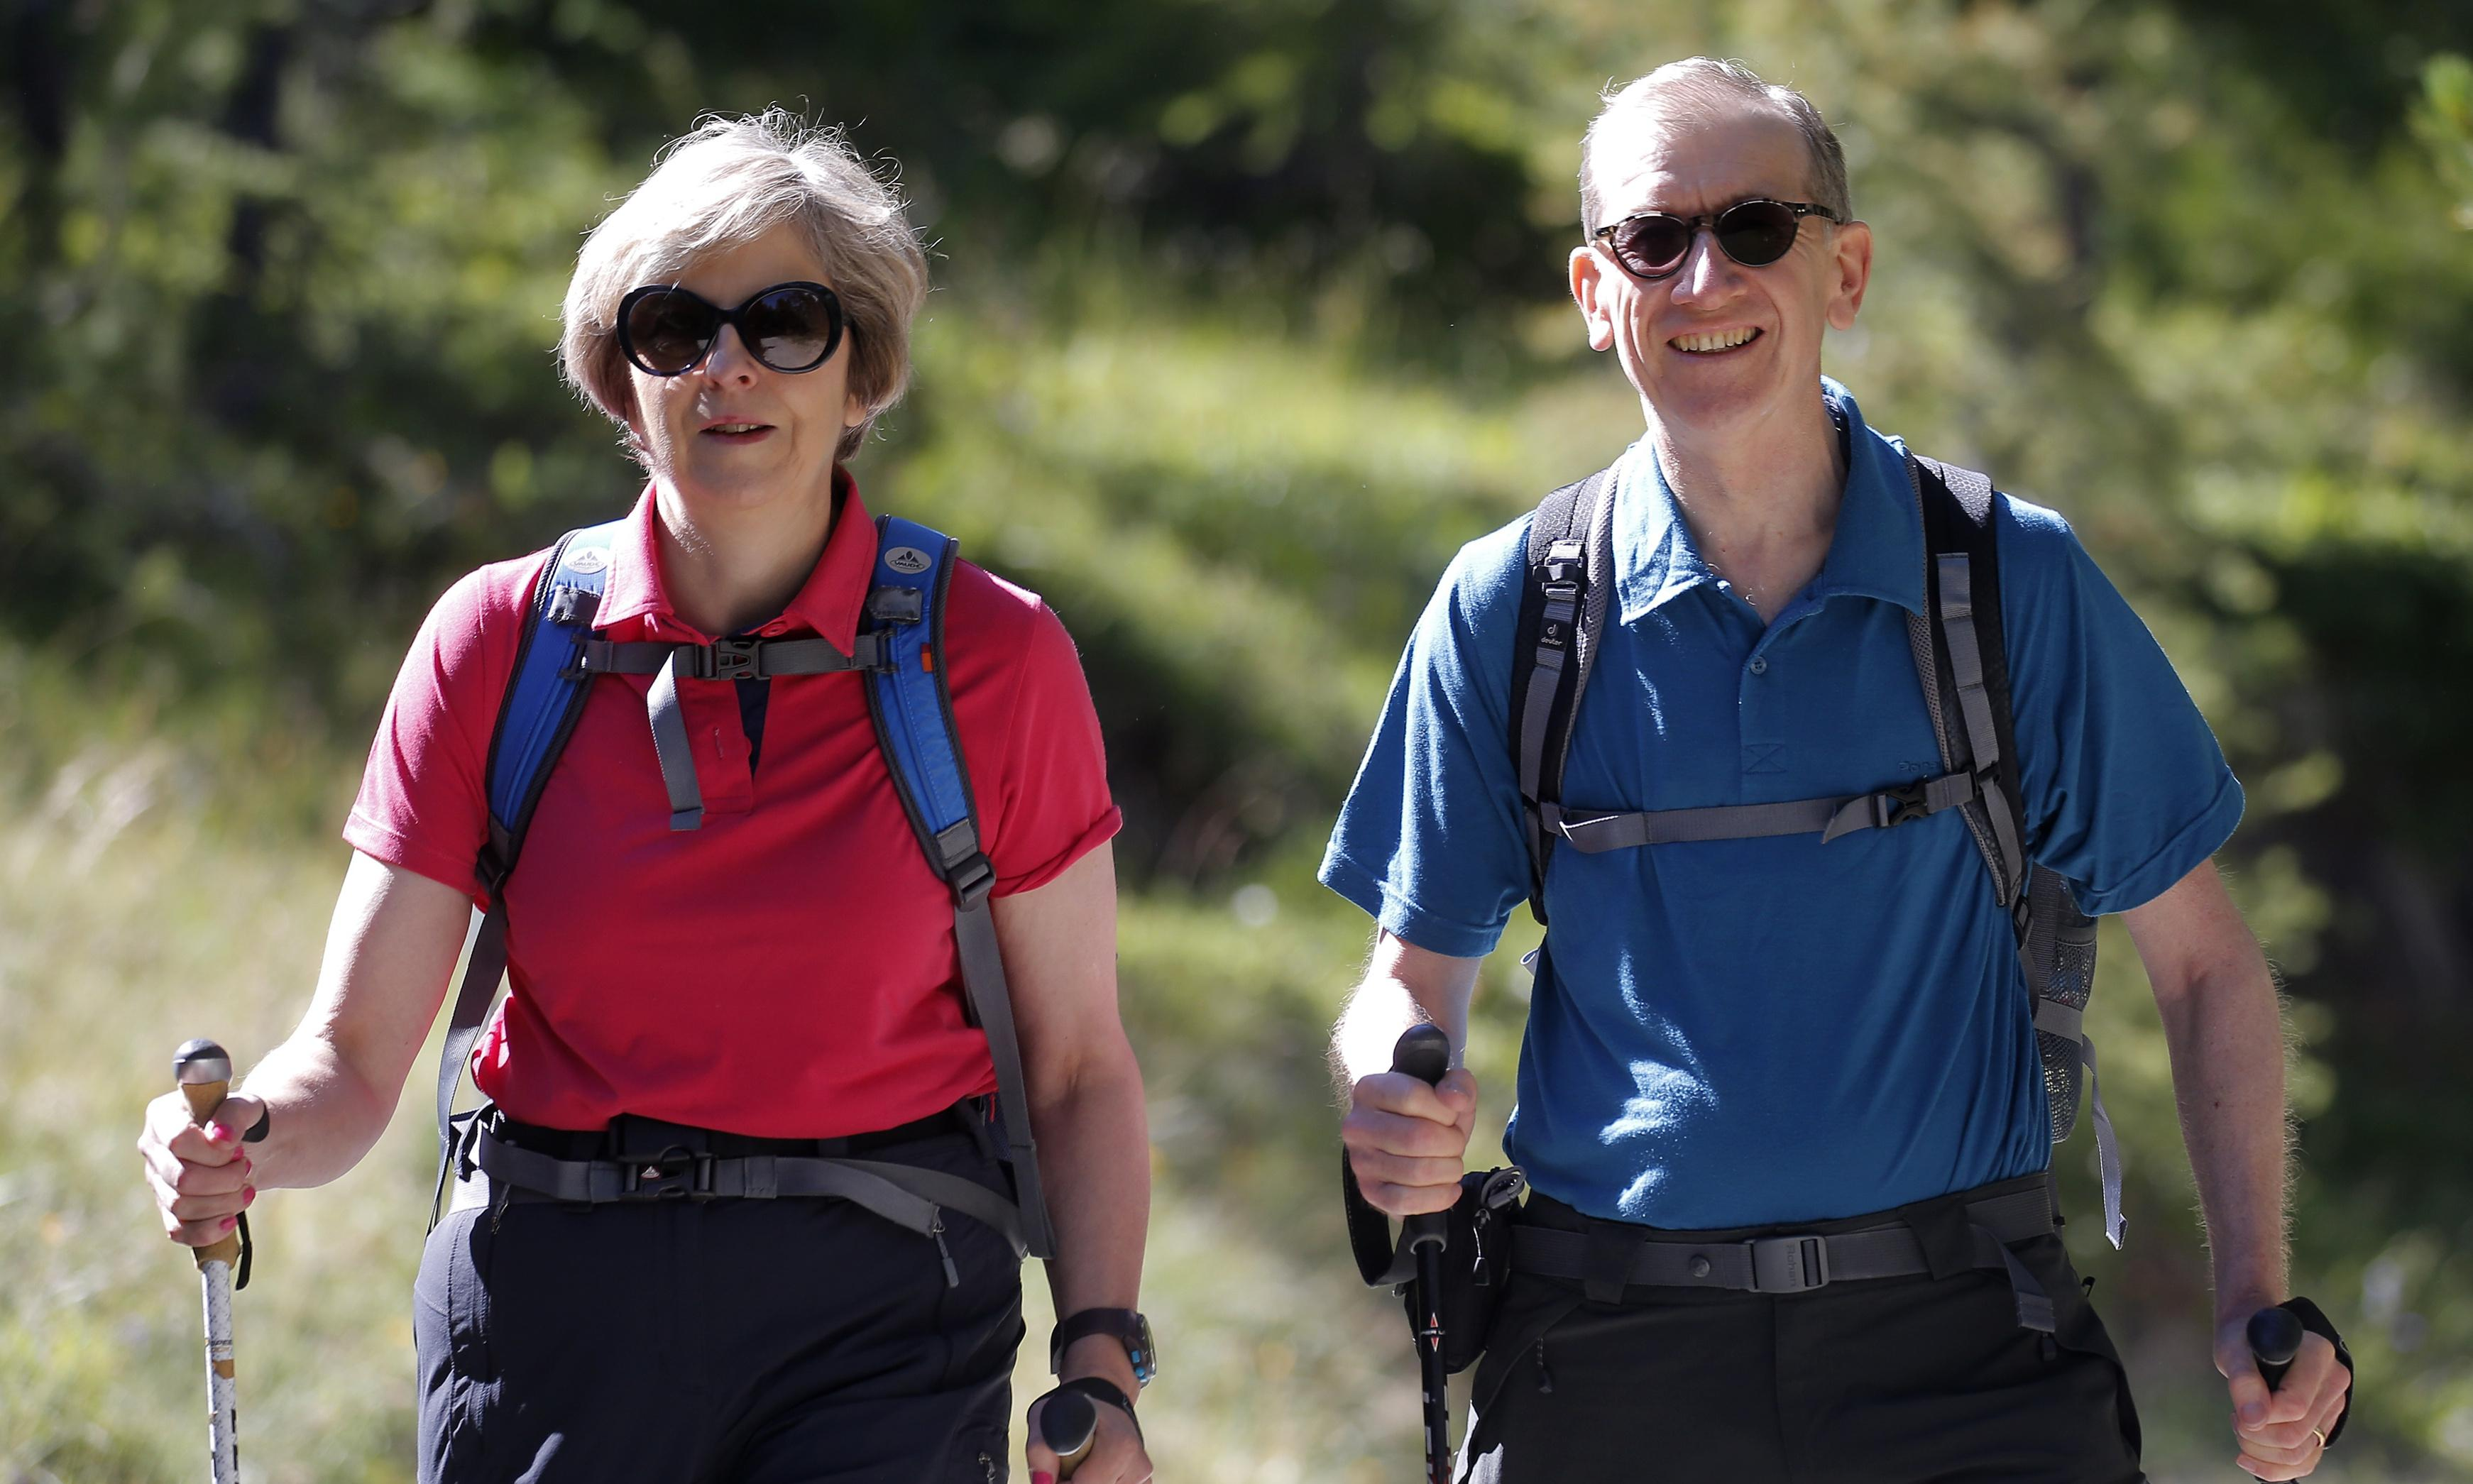 Theresa May: I would rather write Alpine whodunnit than memoir